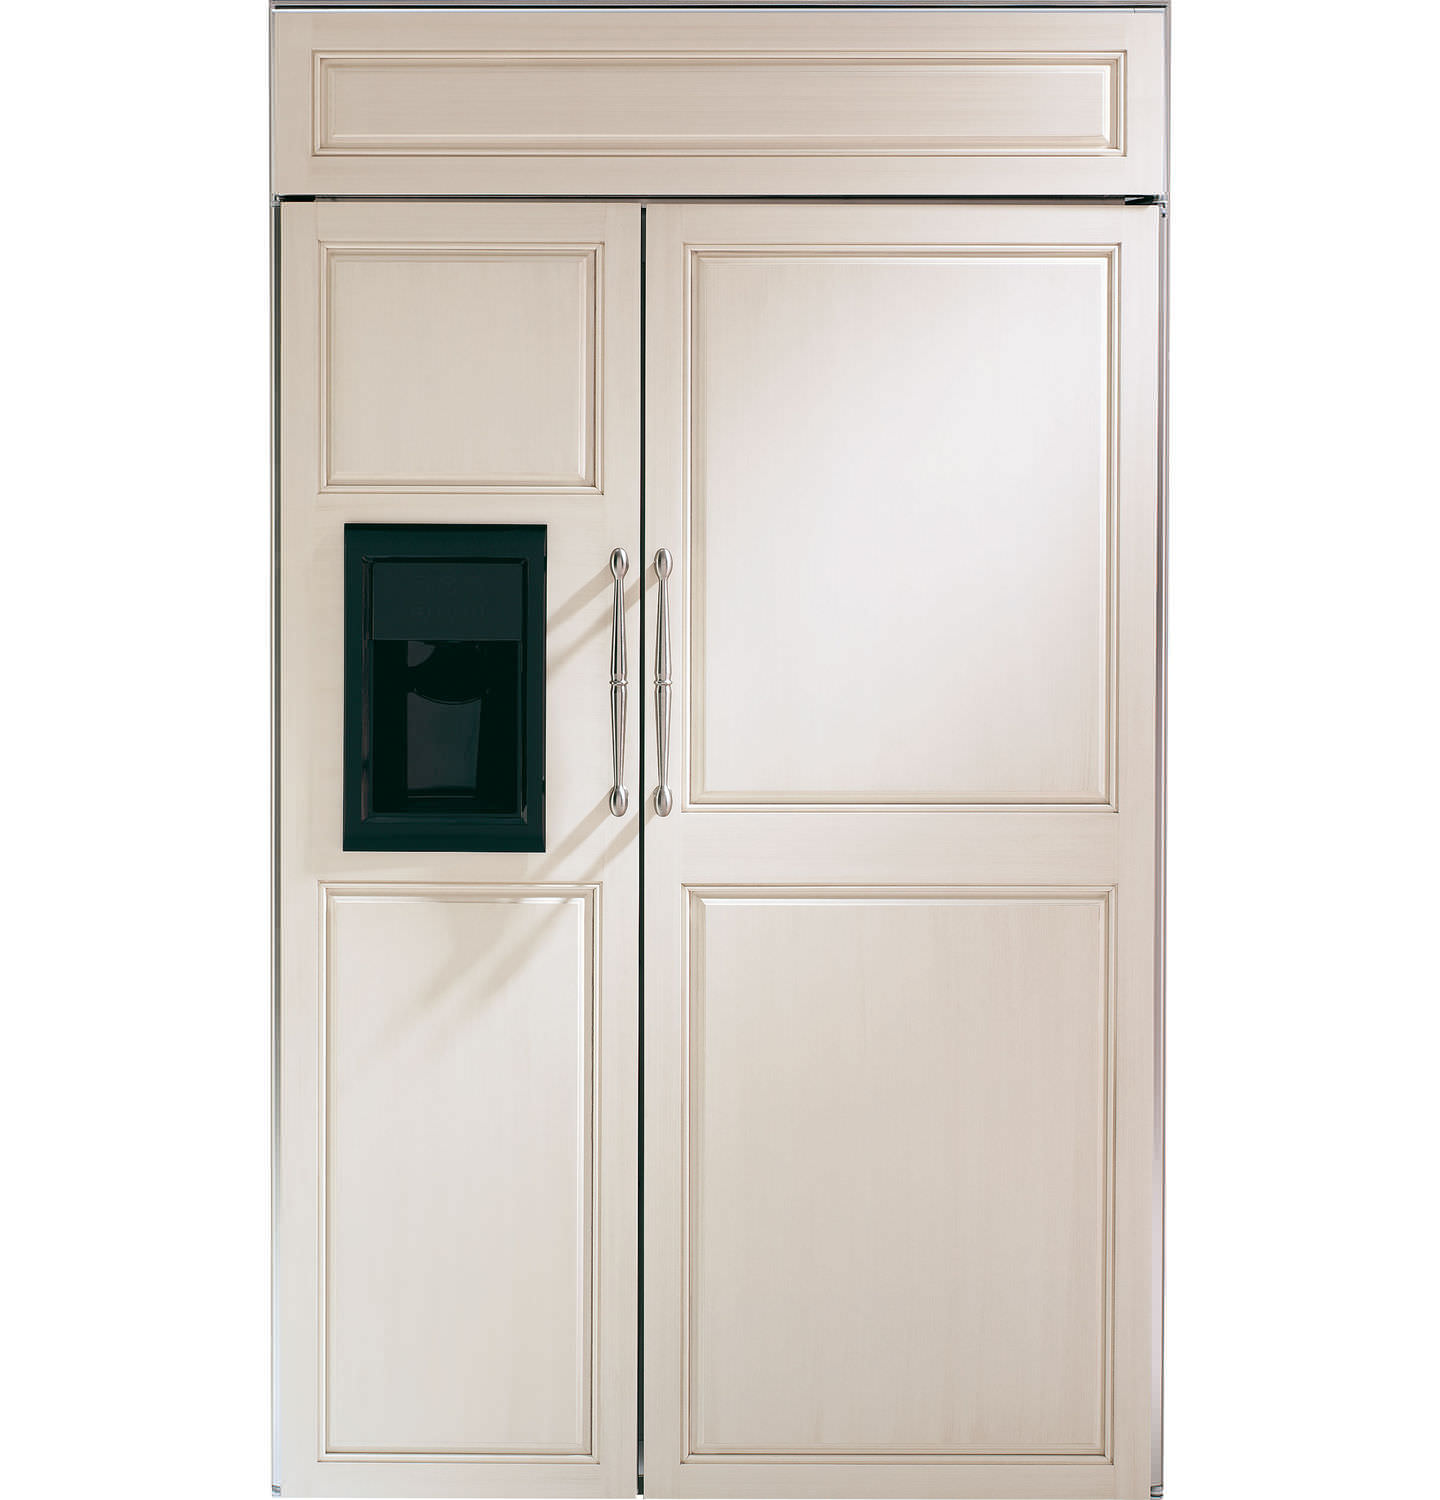 American refrigerator / white / energy-efficient / built-in ...